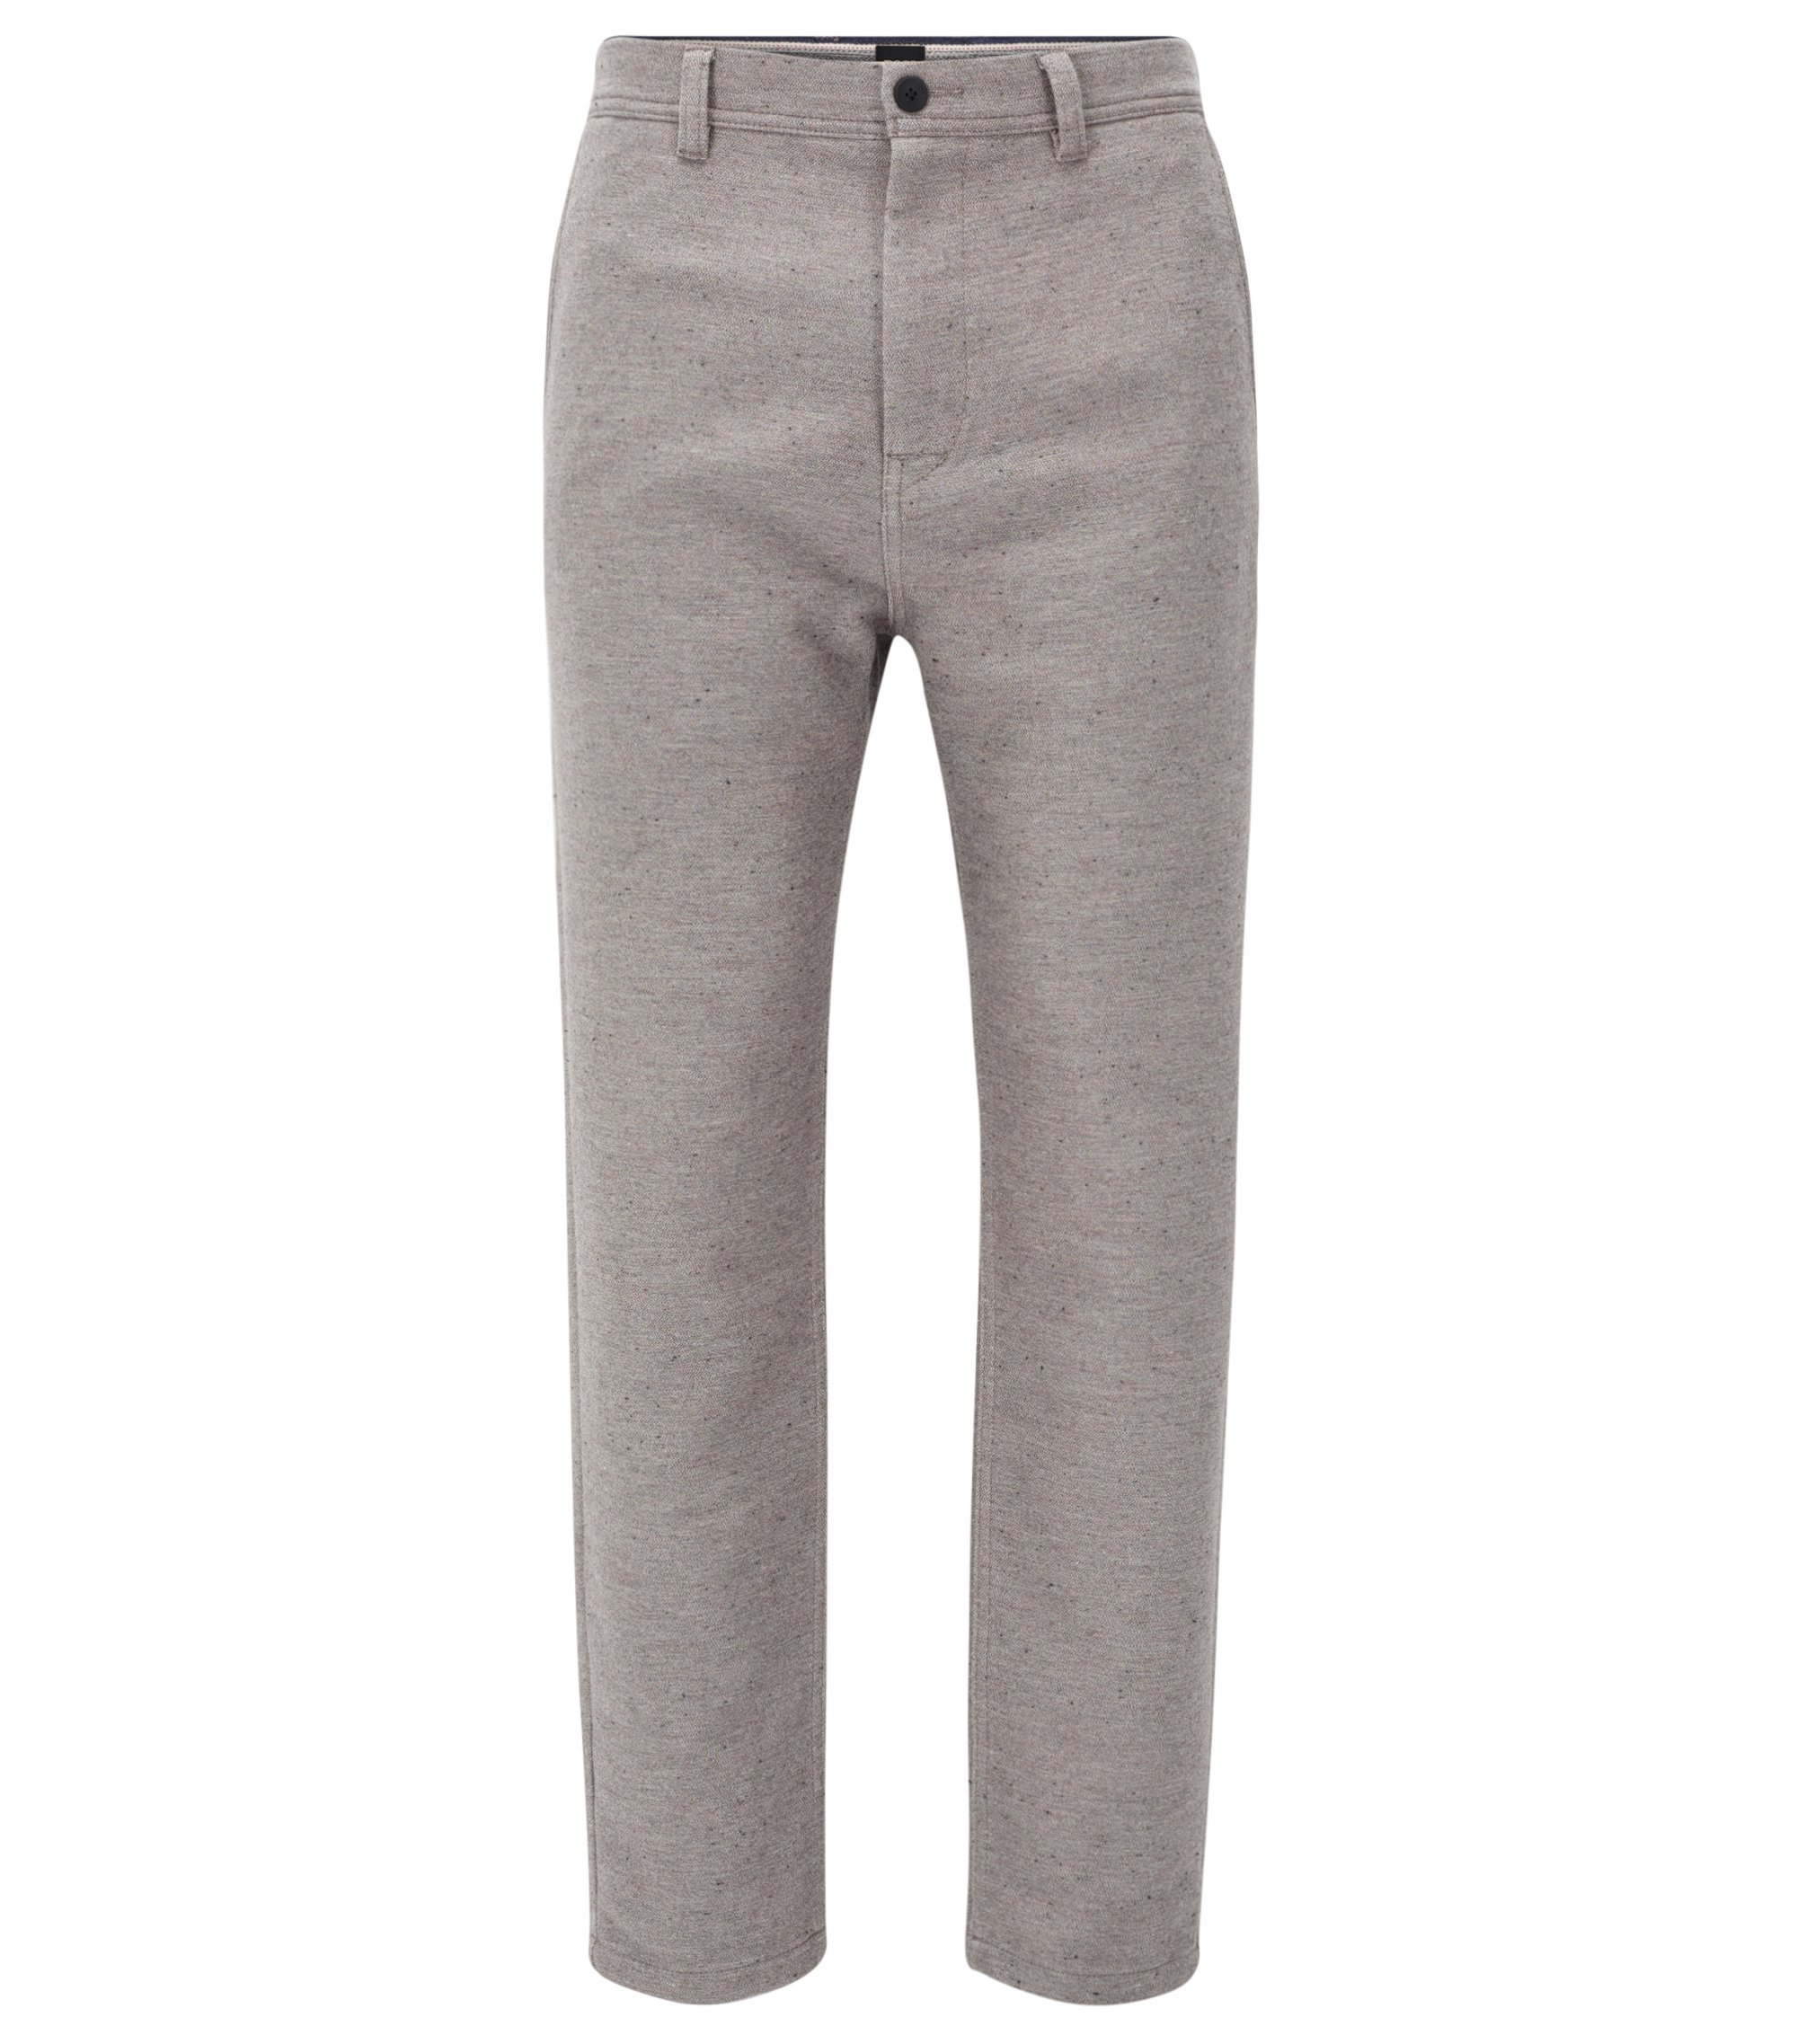 Pantalon Tapered Fit en coton mélangé, Gris chiné